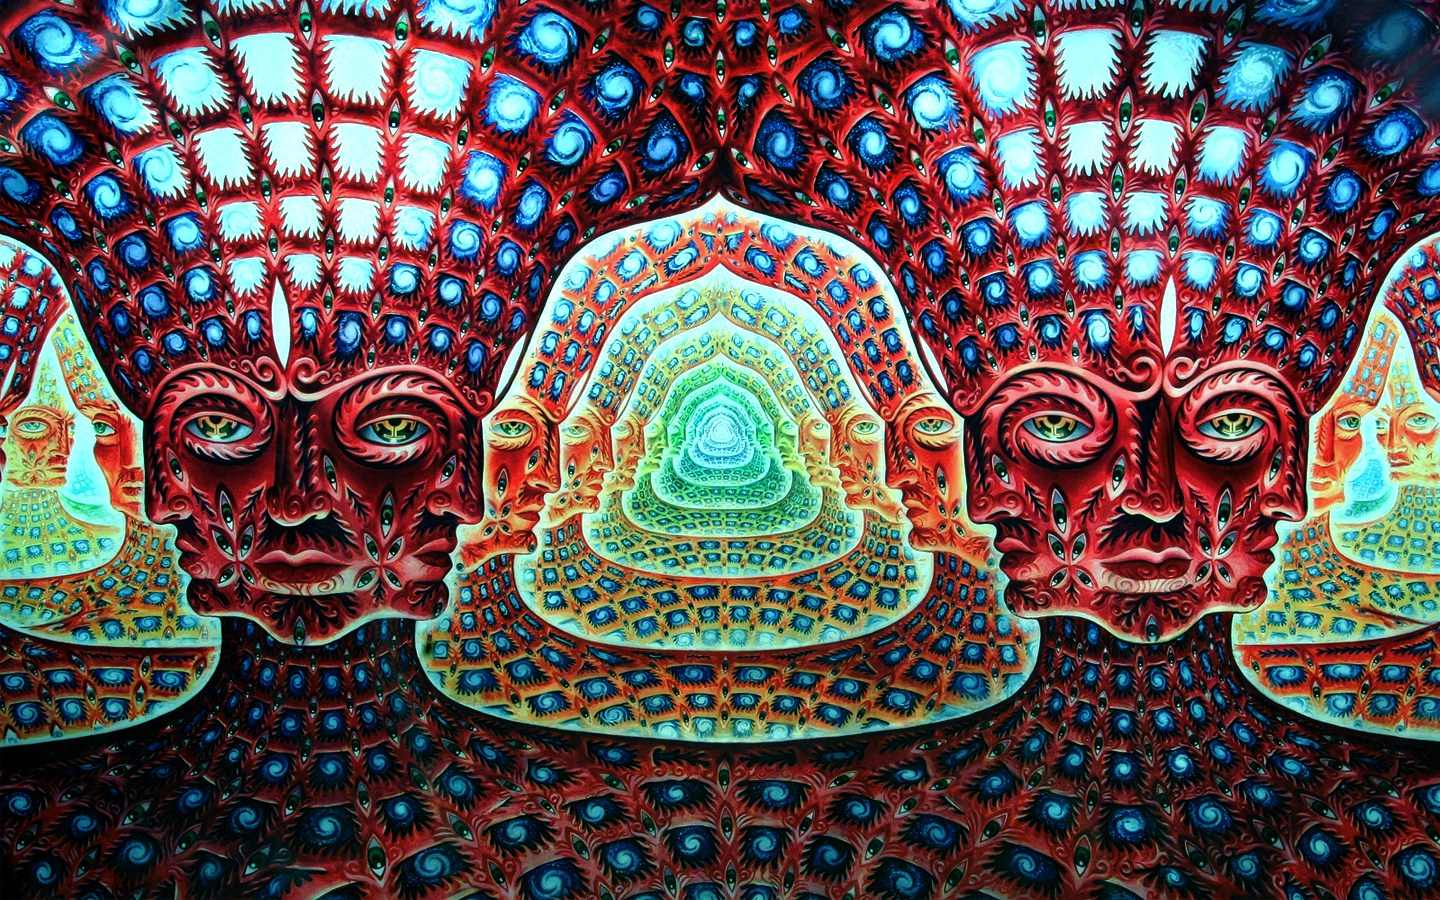 It s Tool  baby    so go get Aenima on and crank it up to LOUD    that    Gaia Alex Grey